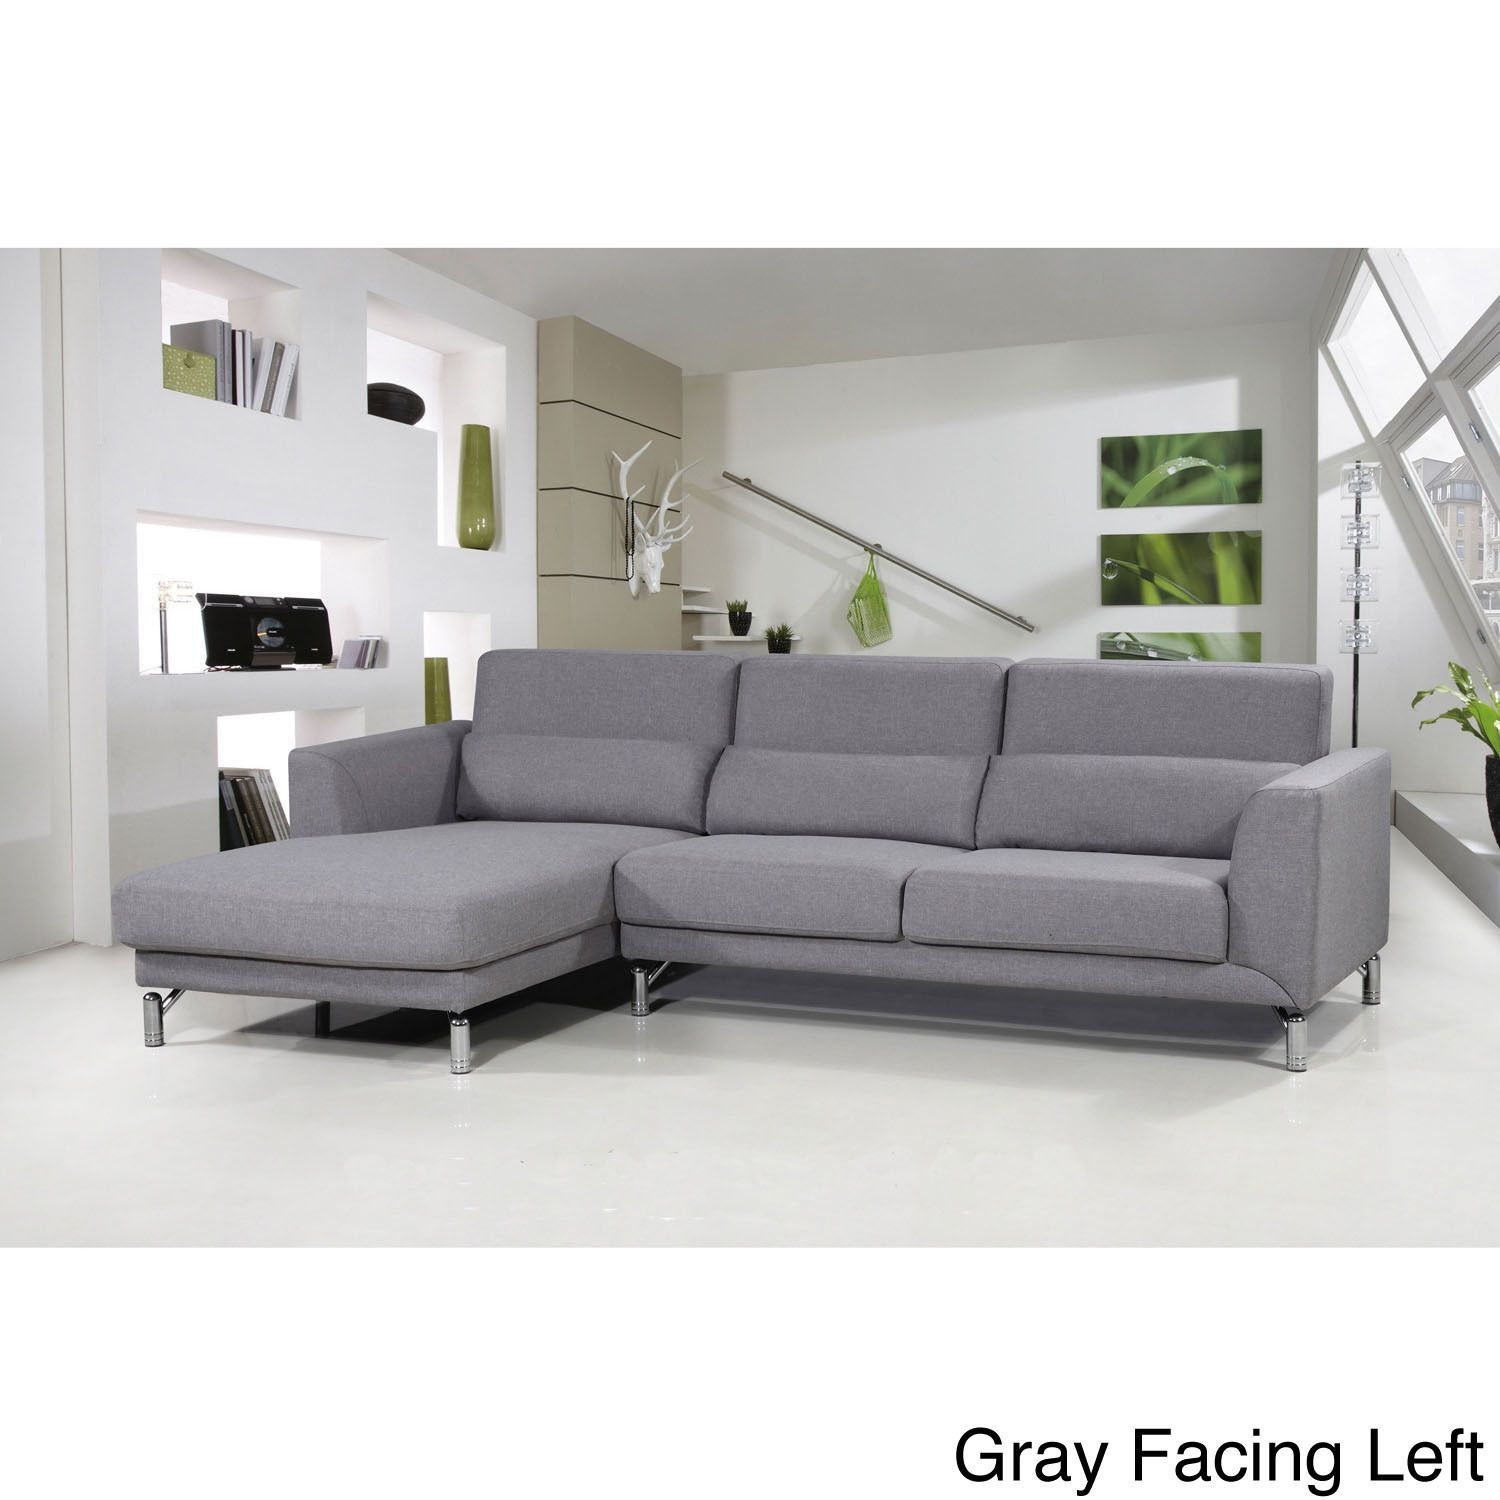 Furniture styles This beautiful chaise and sofa